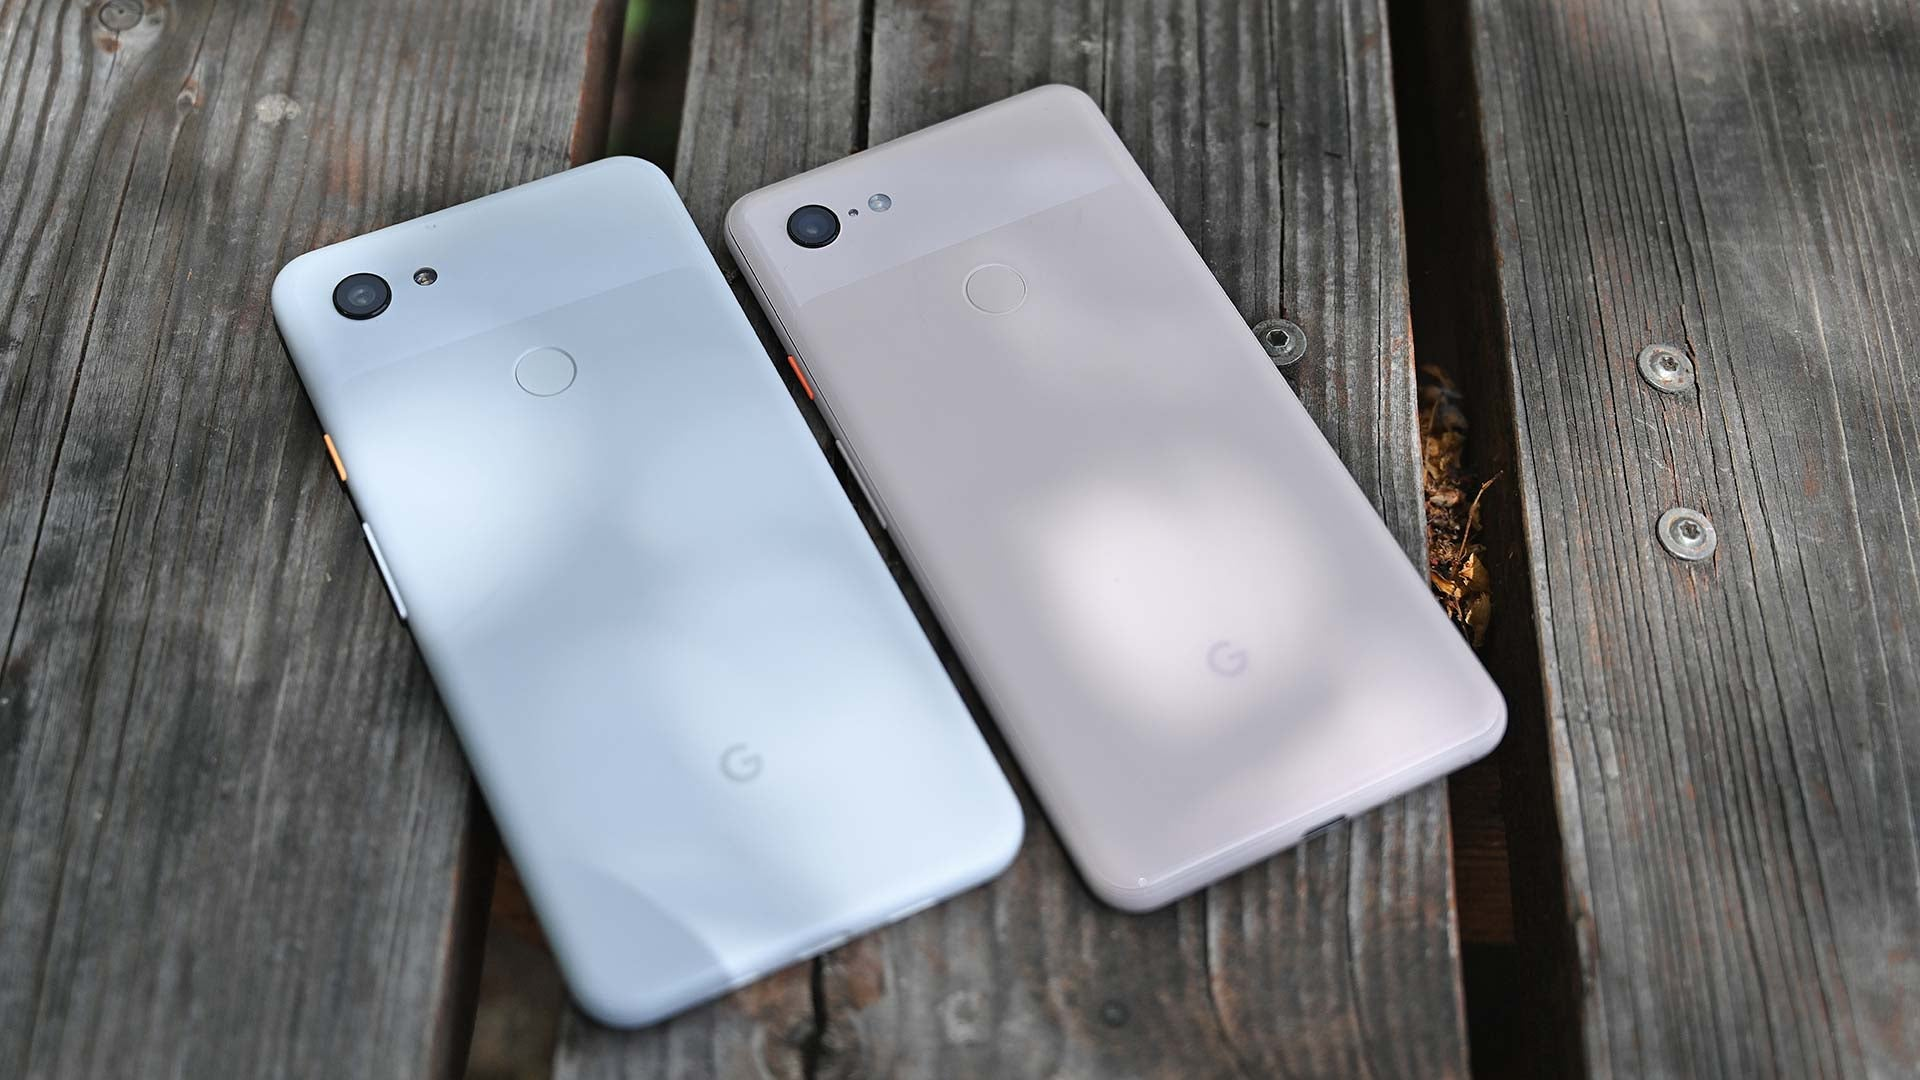 Google Pixel 3a Review: The Best Value Smartphone